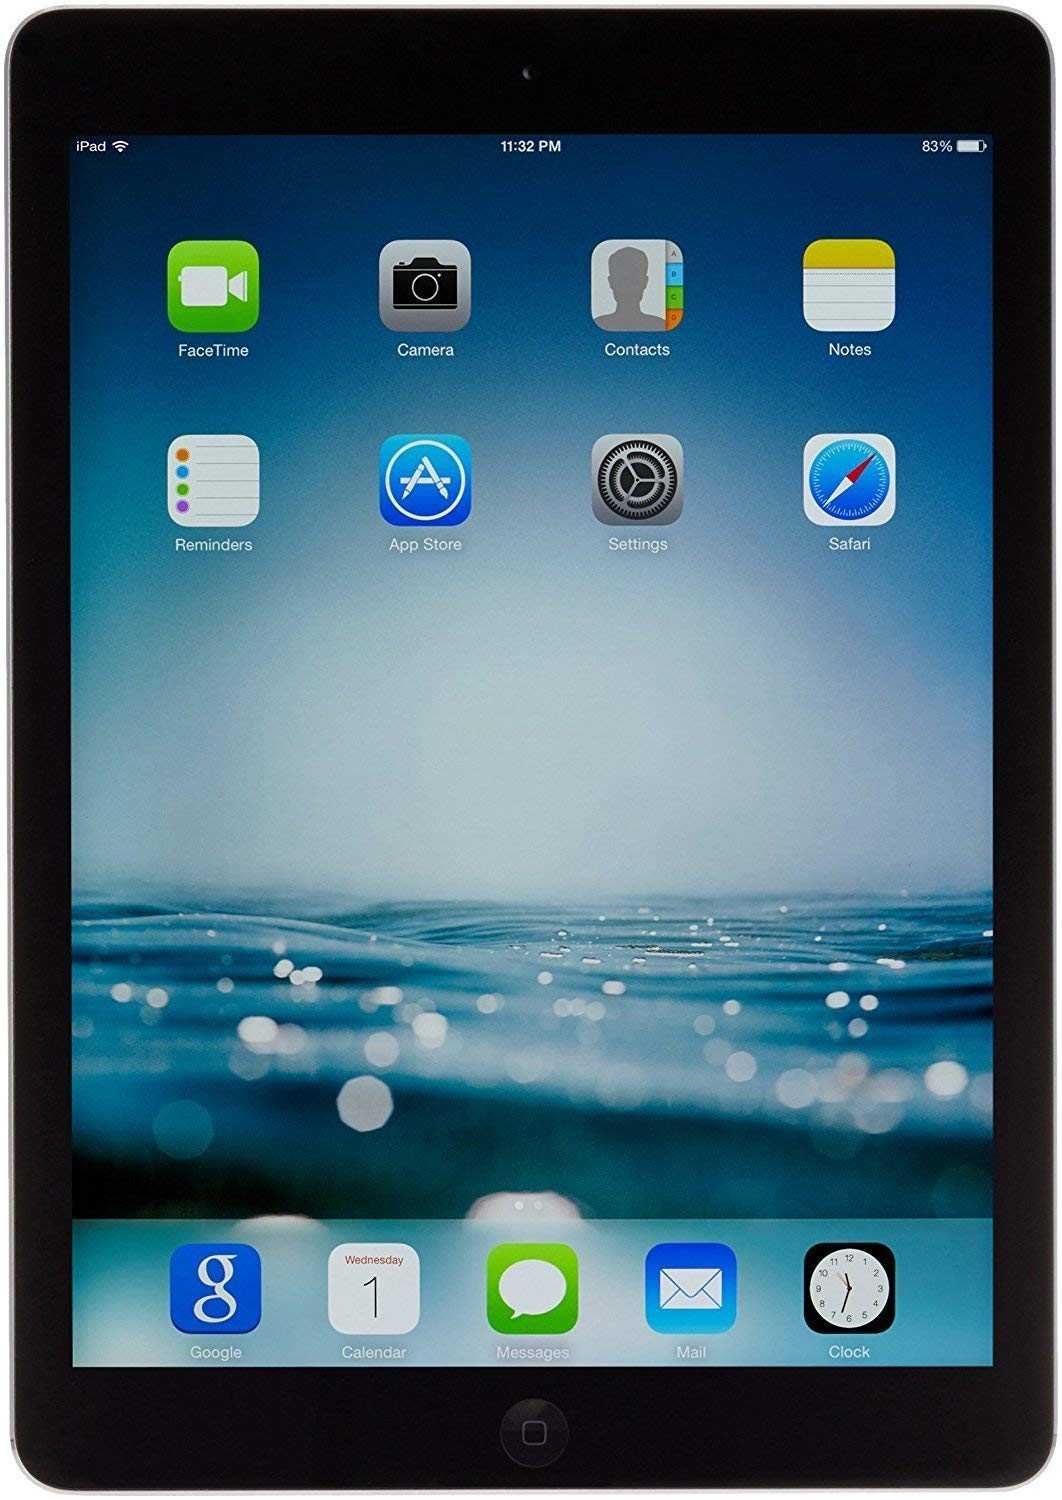 Apple iPad Air MD785LL/B 9.7-Inch 16GB Wi-Fi Tablet (Black with Space Gray) (Renewed)